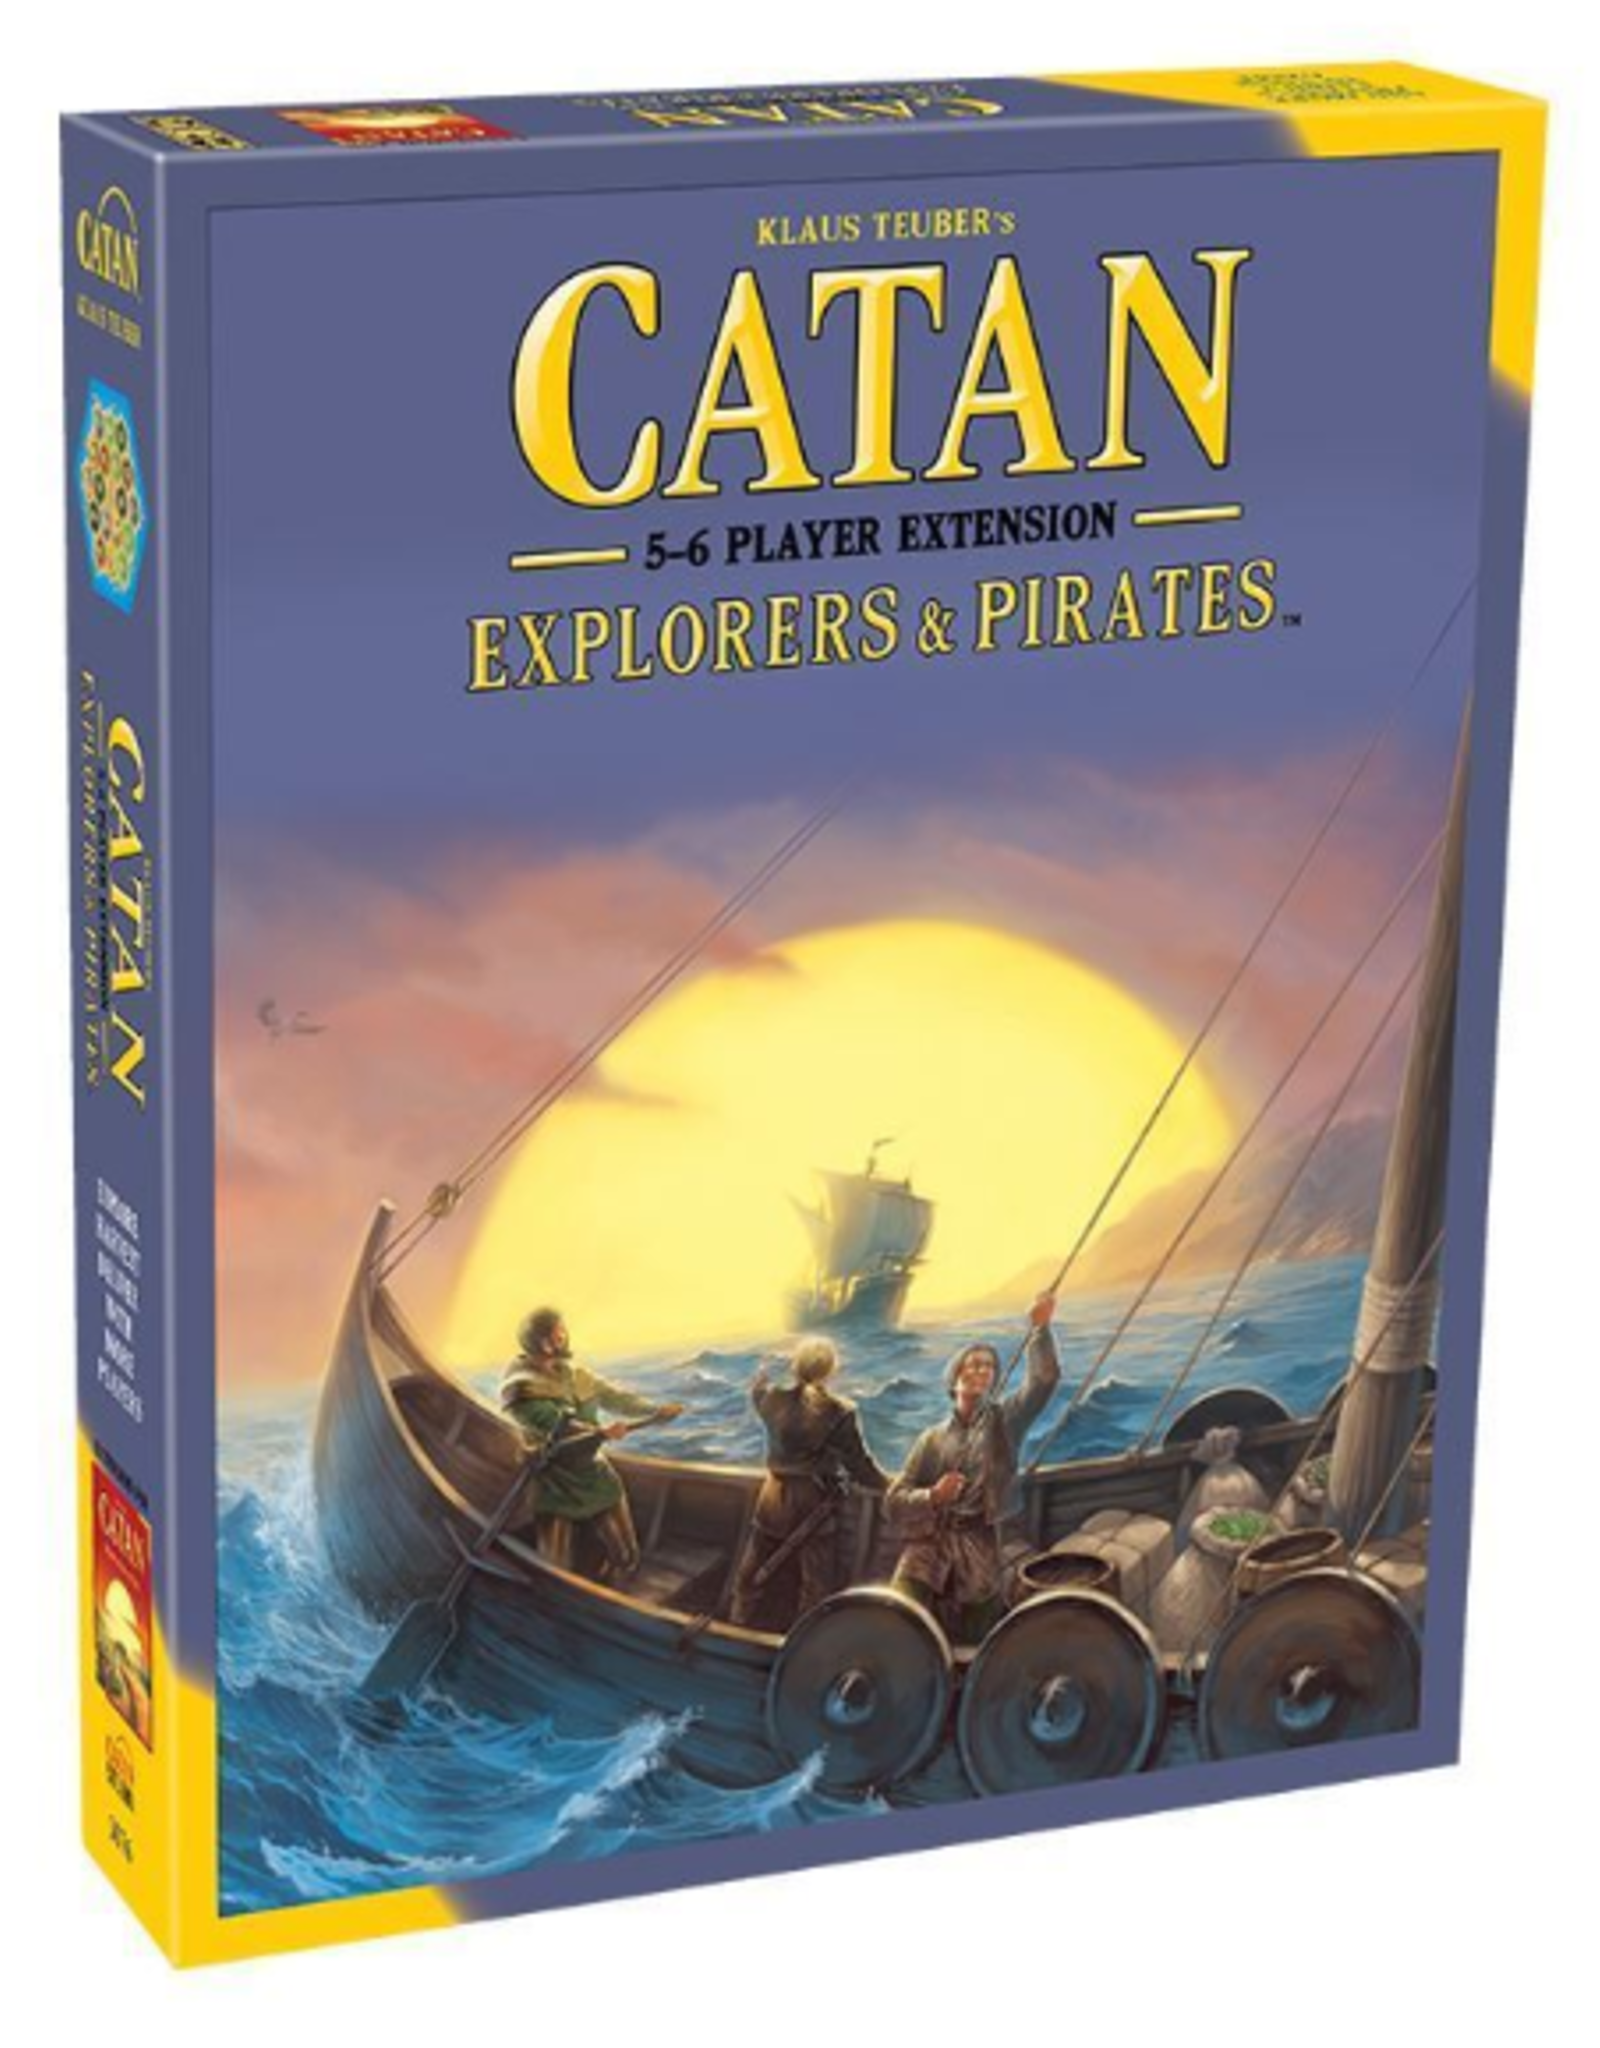 Catan Studio Catan Explorers & Pirates 5-6 Player Extension